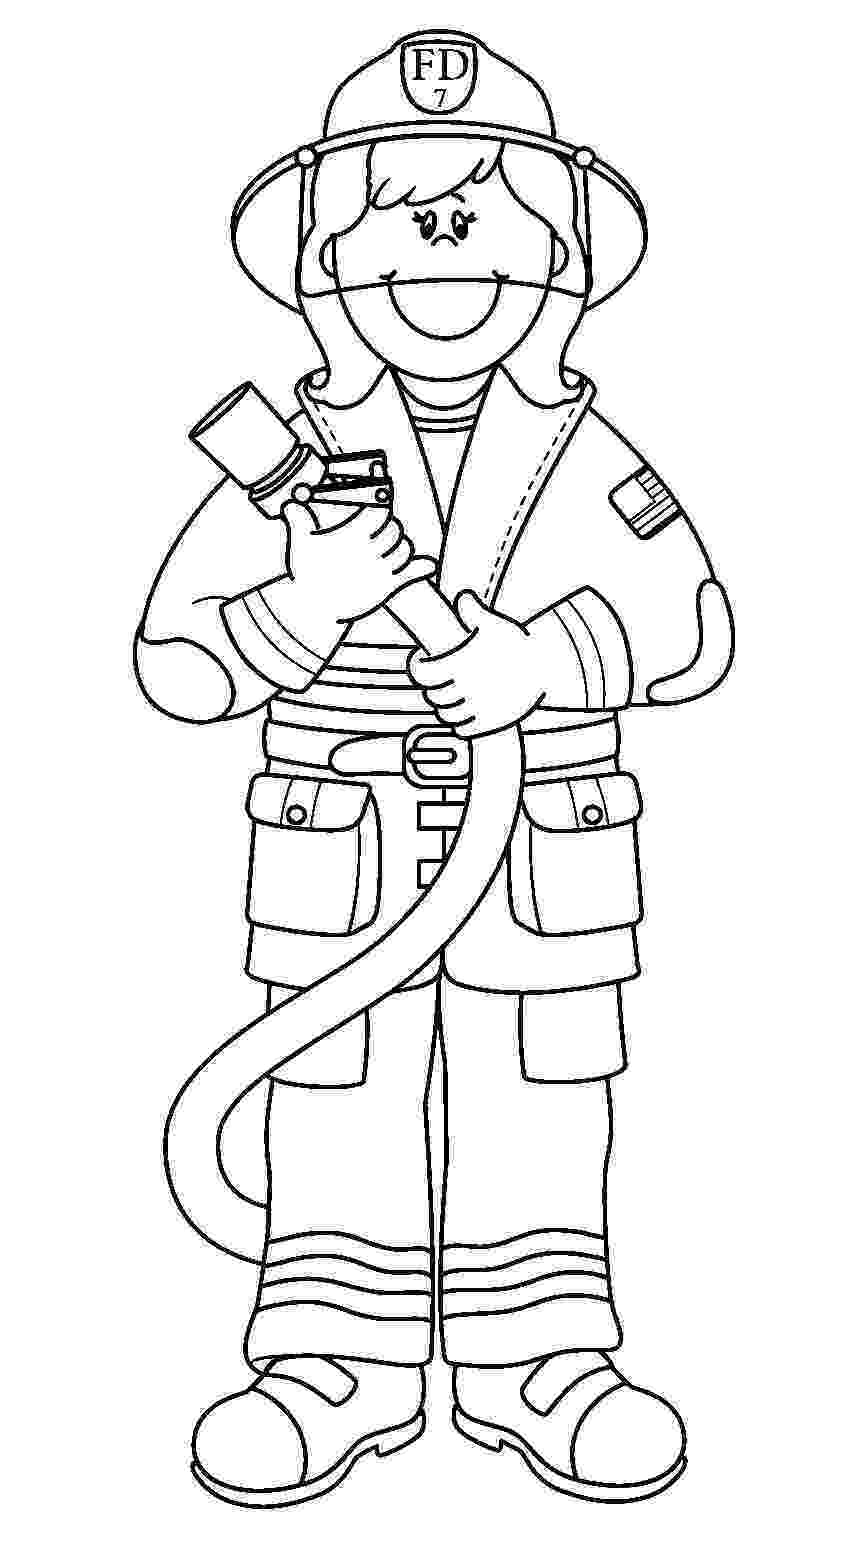 fire coloring pages printable free printable fire truck coloring pages for kids pages printable coloring fire